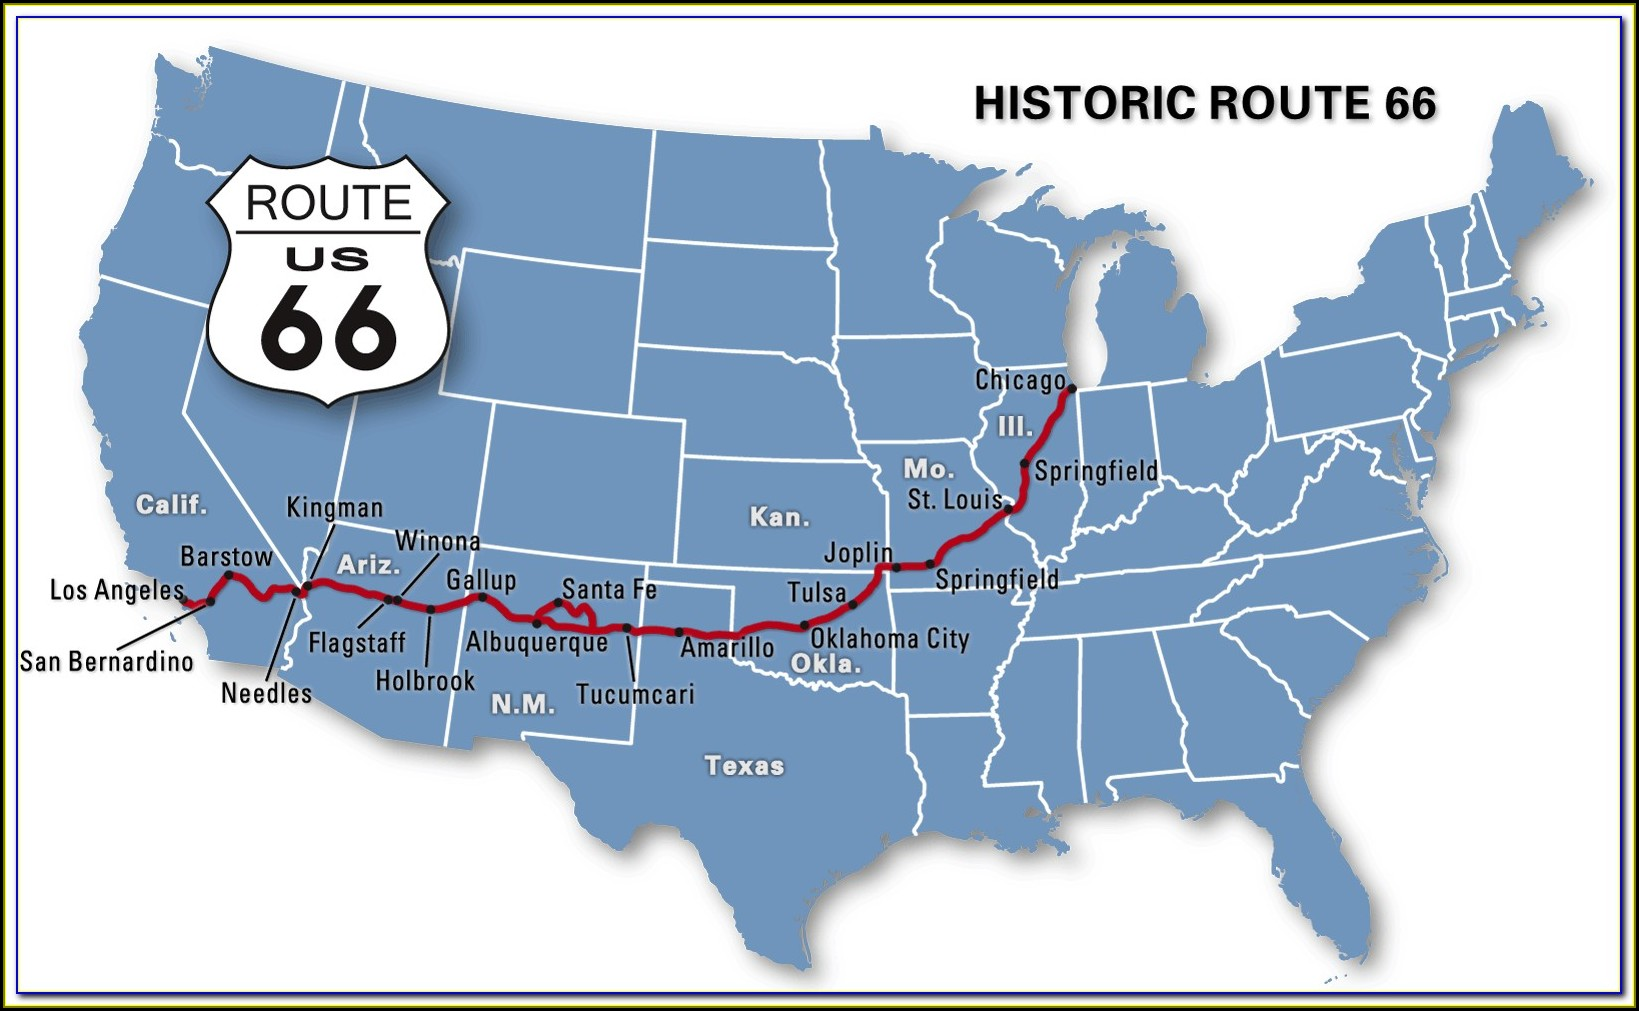 Map Of Historic Route 66 In Texas